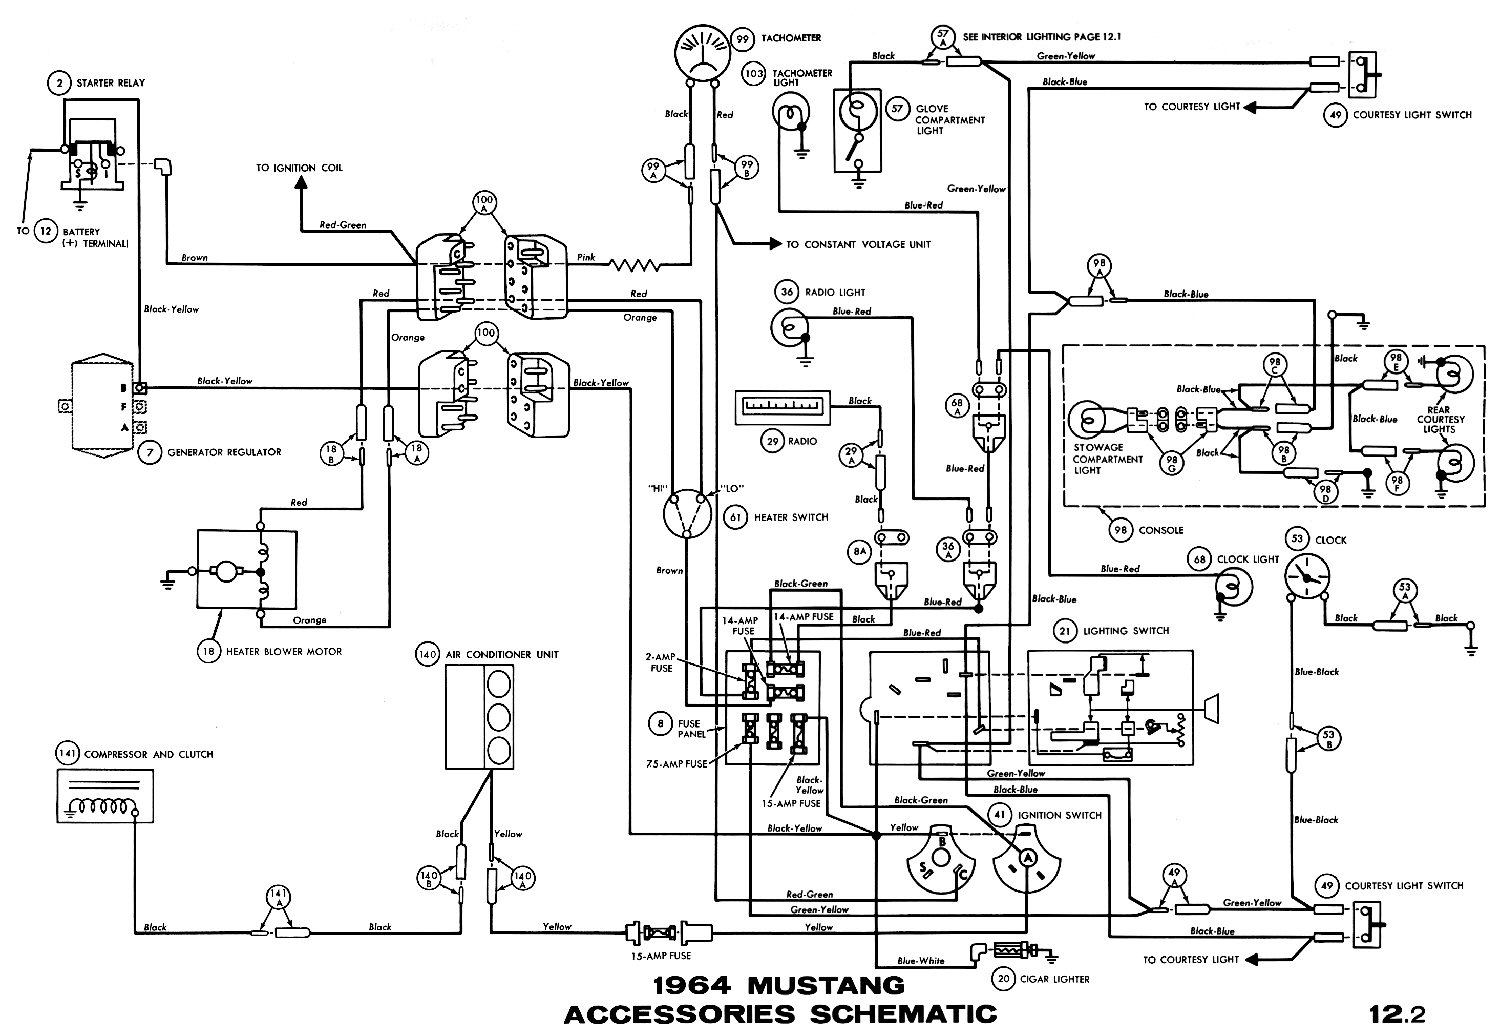 1964m 69 mustang wiring diagram 69 mustang radio wiring diagram \u2022 free  at reclaimingppi.co